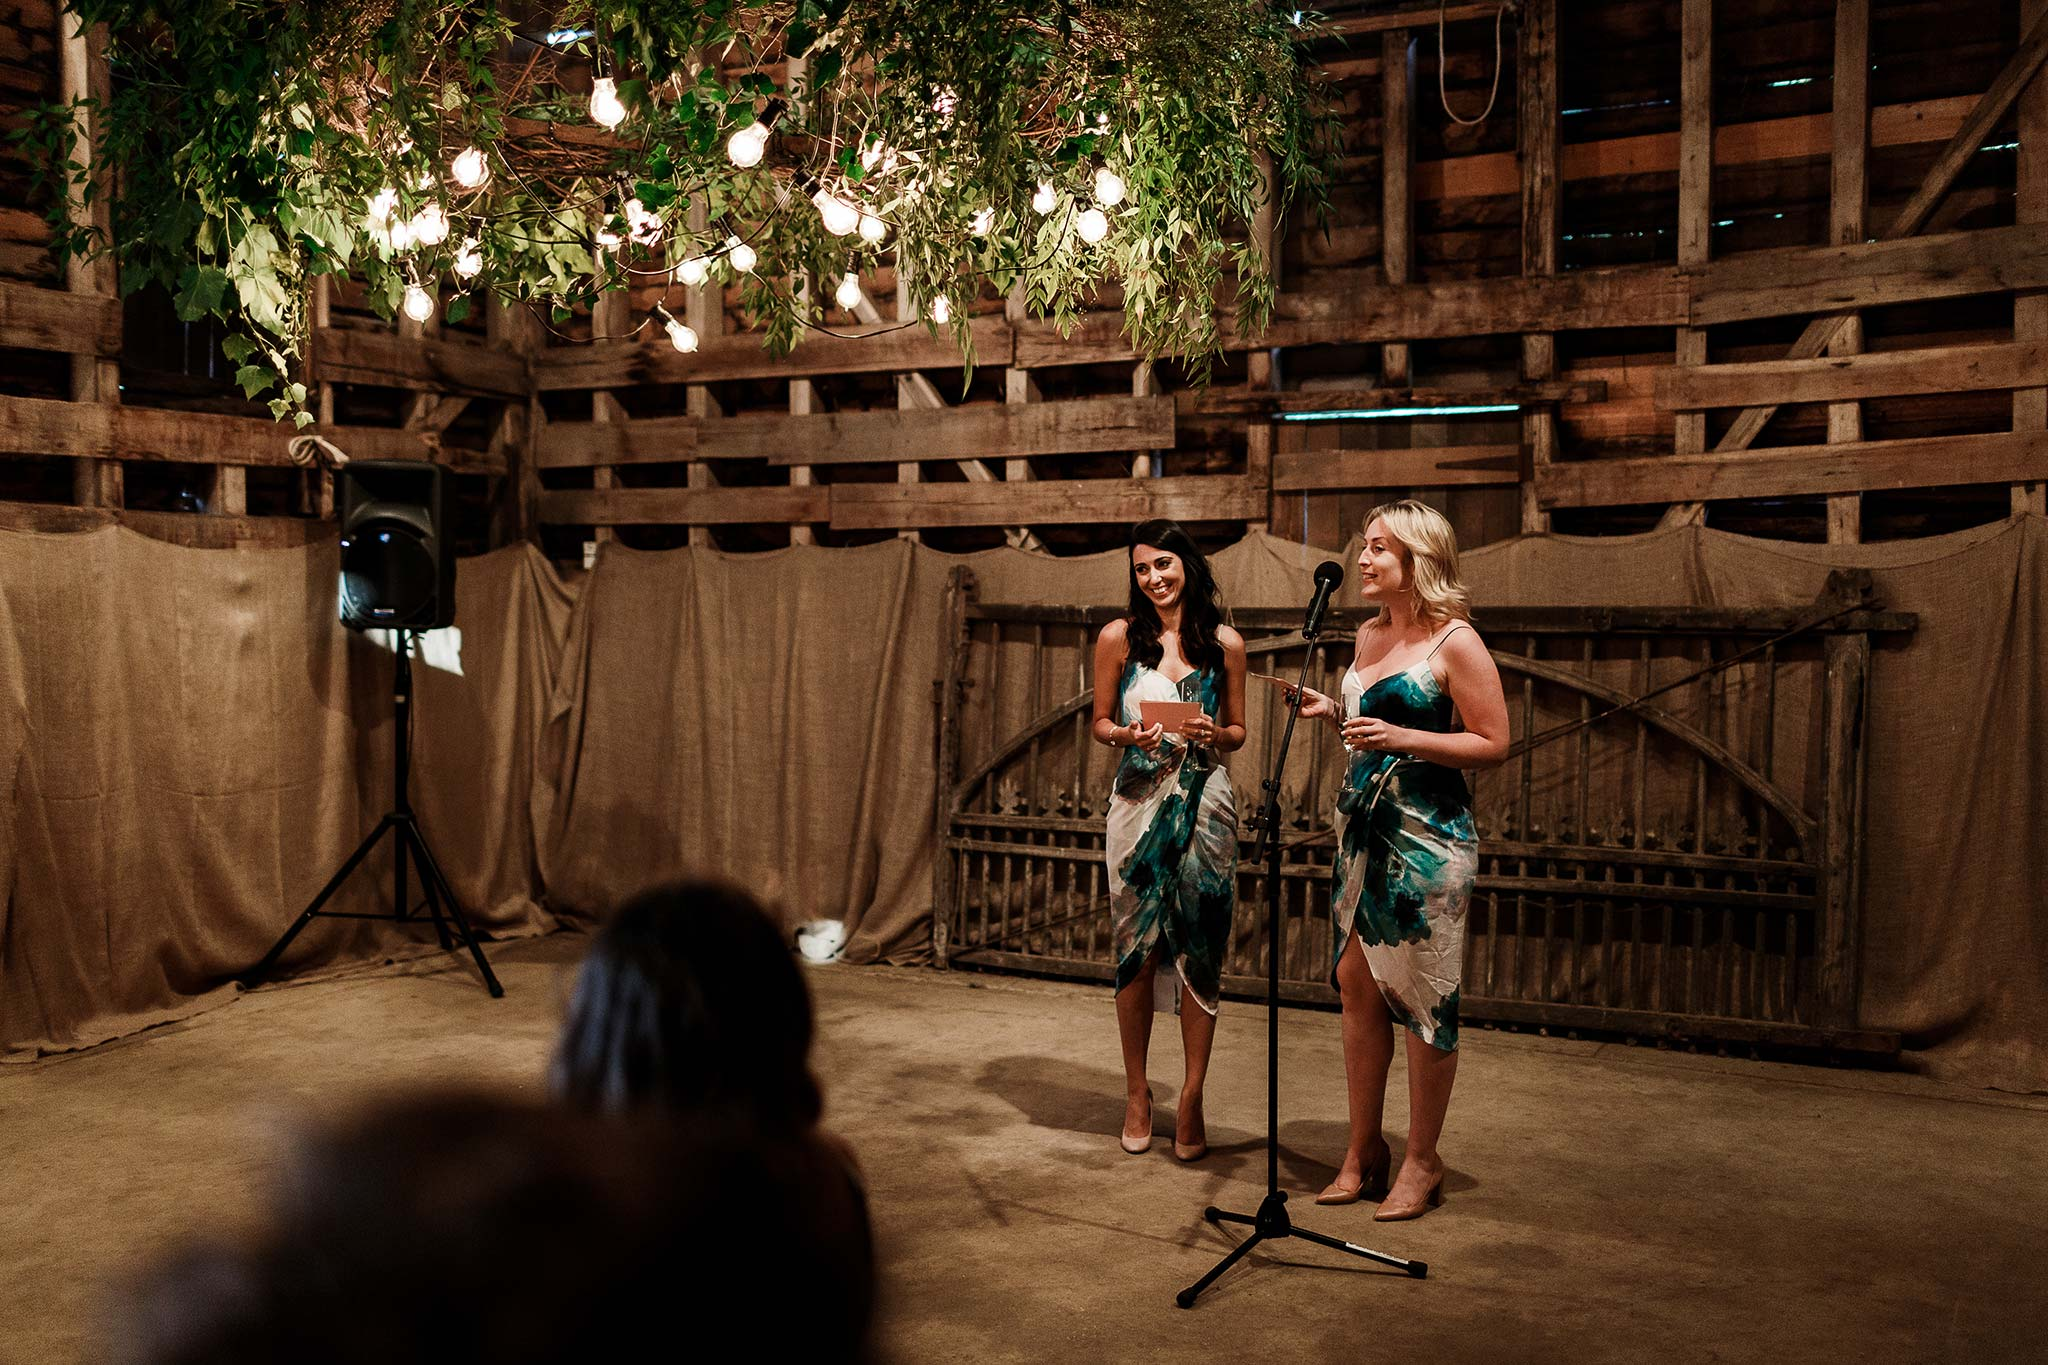 Launceston-Brickendon-barn-Wedding-Photographer-reception-speeches